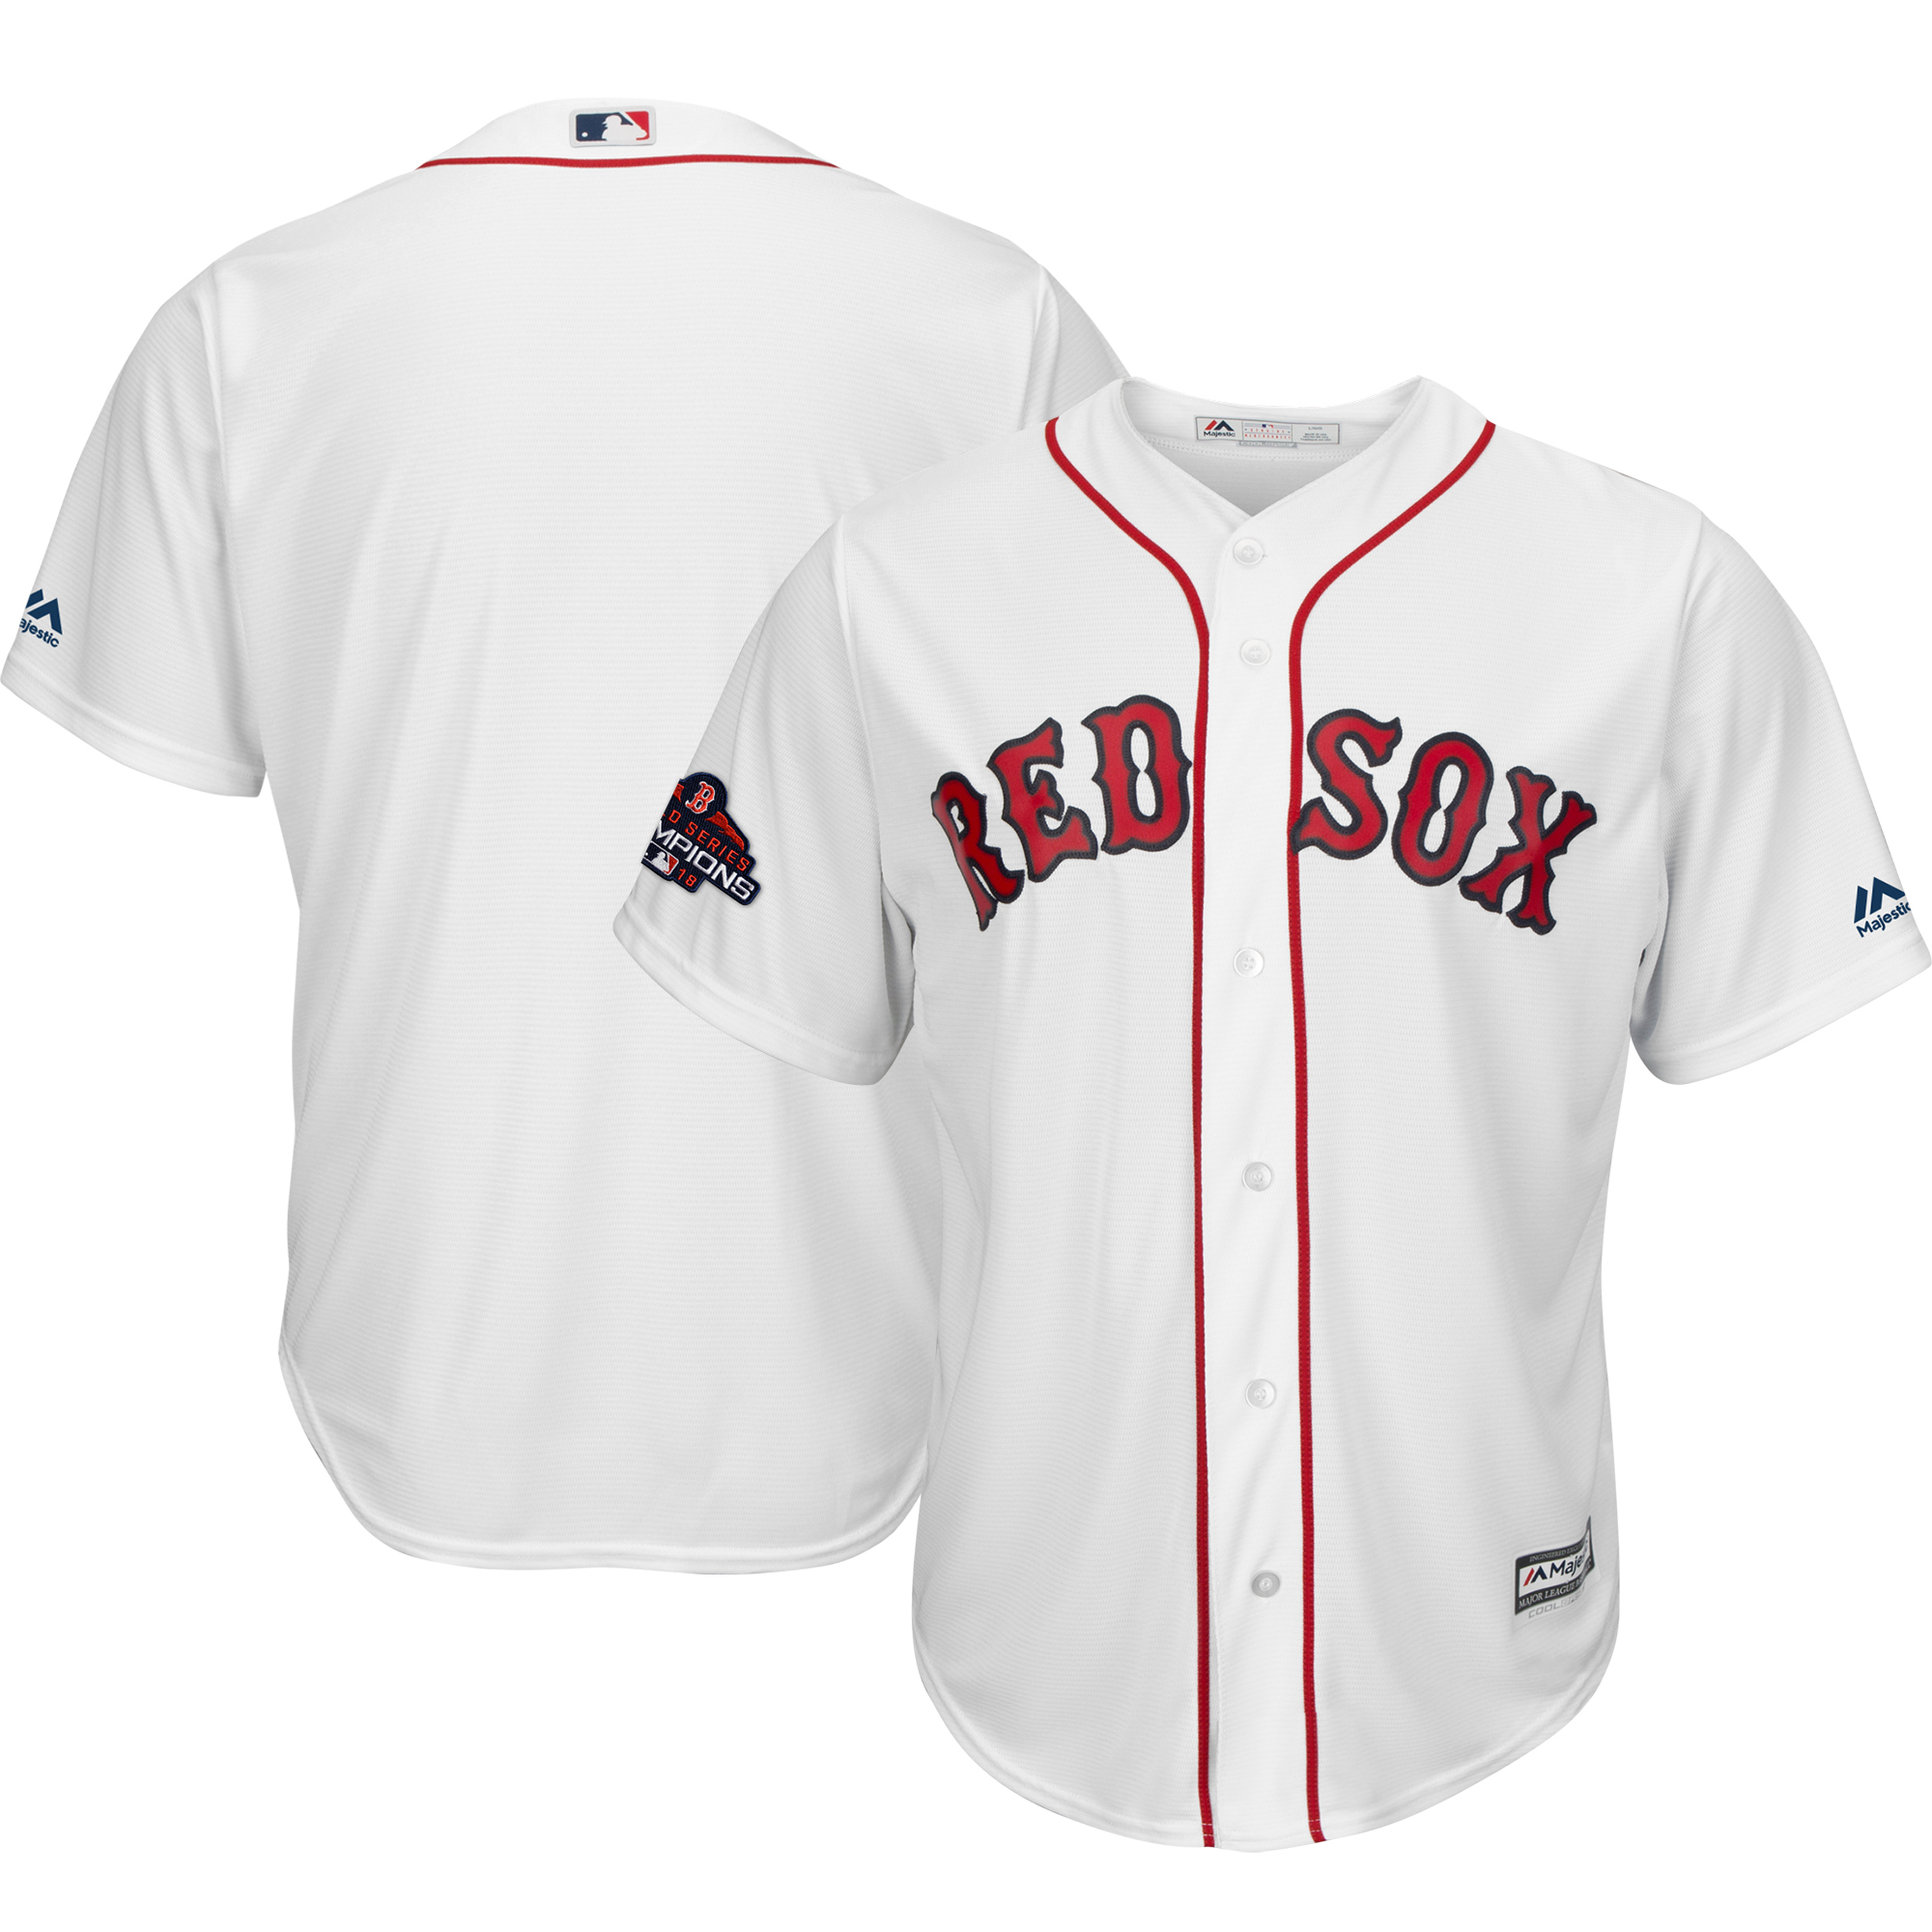 Boston Red Sox Majestic 2018 World Series Champions Team Logo Jersey - White